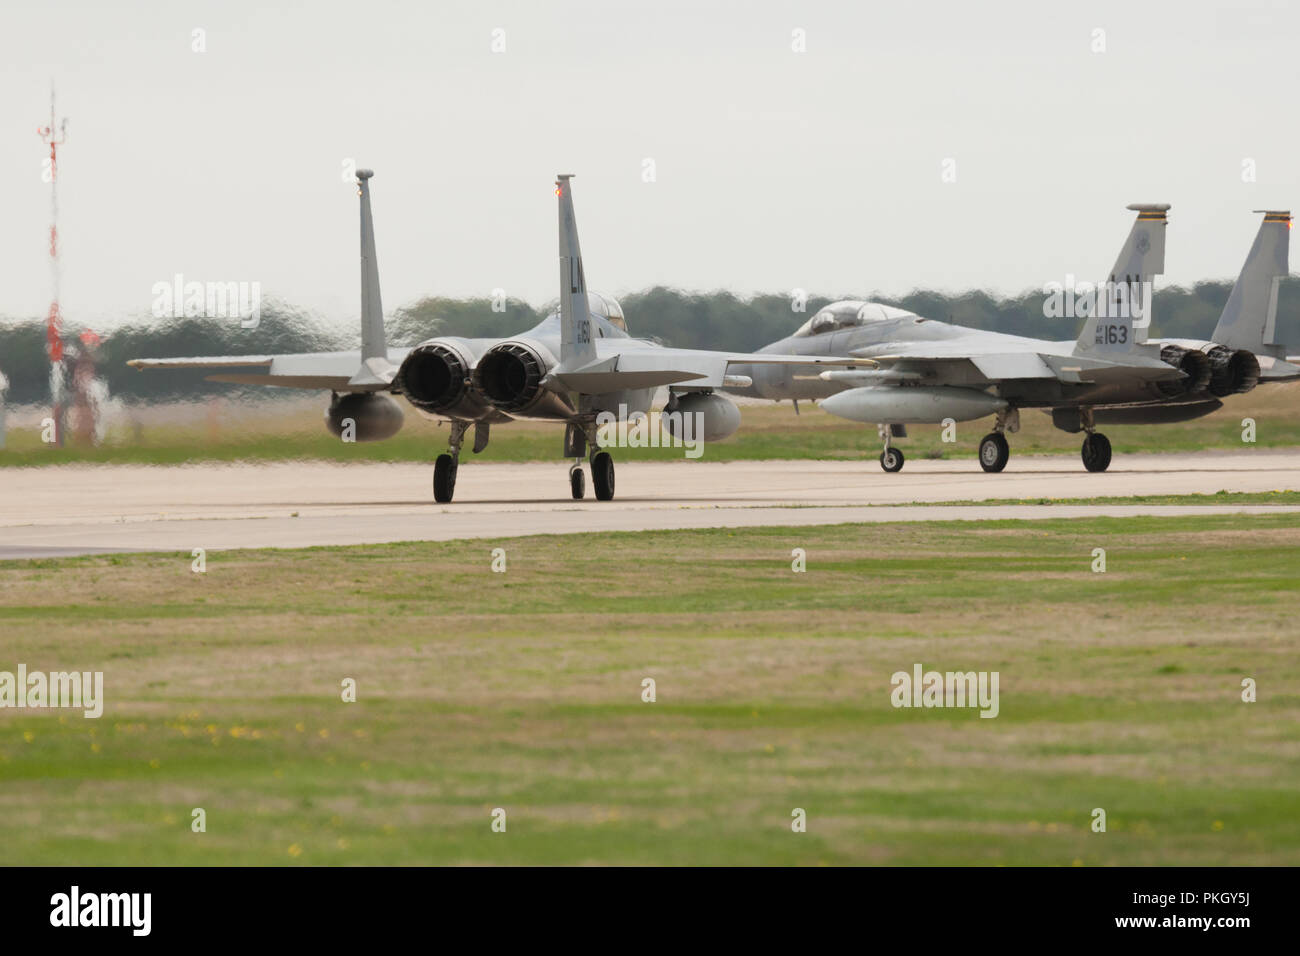 F-15 aircraft jet fighters taxying on runway at RAF Lakenheath, Suffolk, UK. Unsharpened - Stock Image